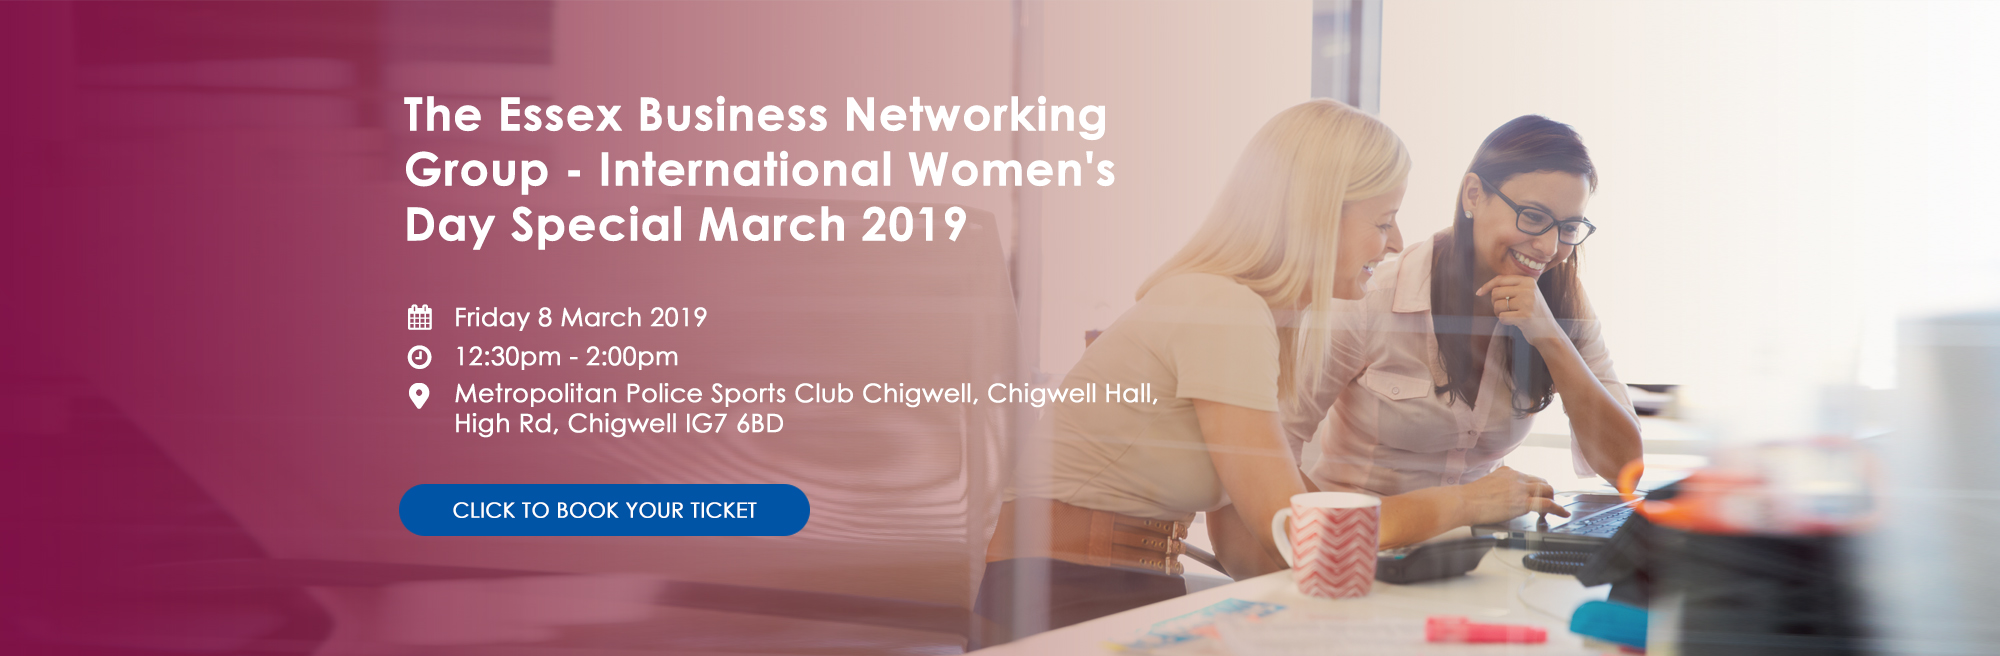 The Essex Business Networking Group - March 2019